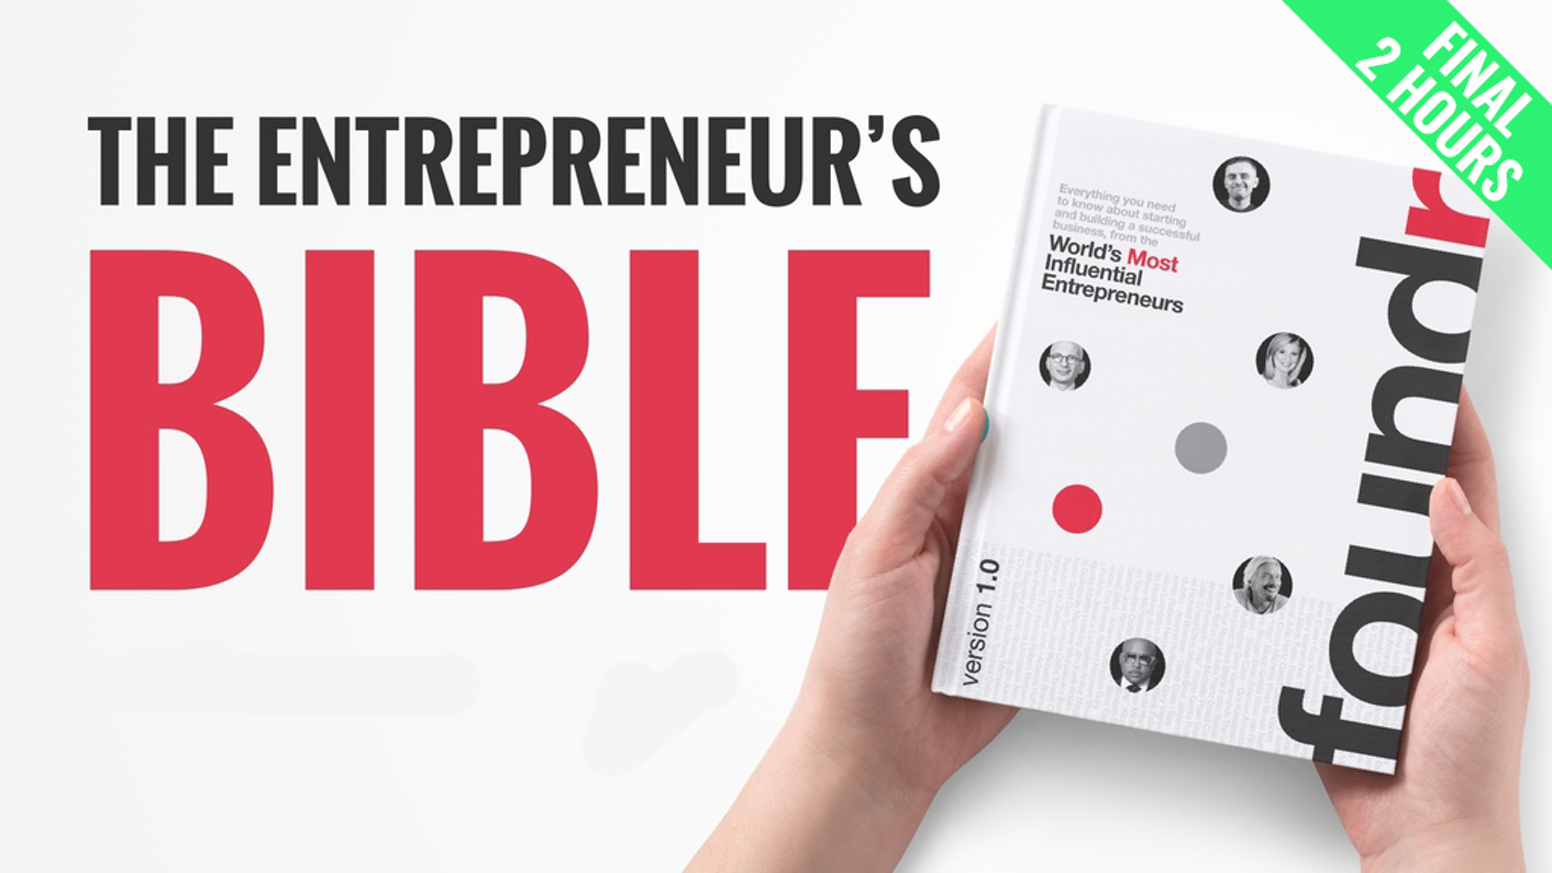 Get access to the top lessons, tips, and advice from the world's greatest entrepreneurs compiled into one beautifully designed book.